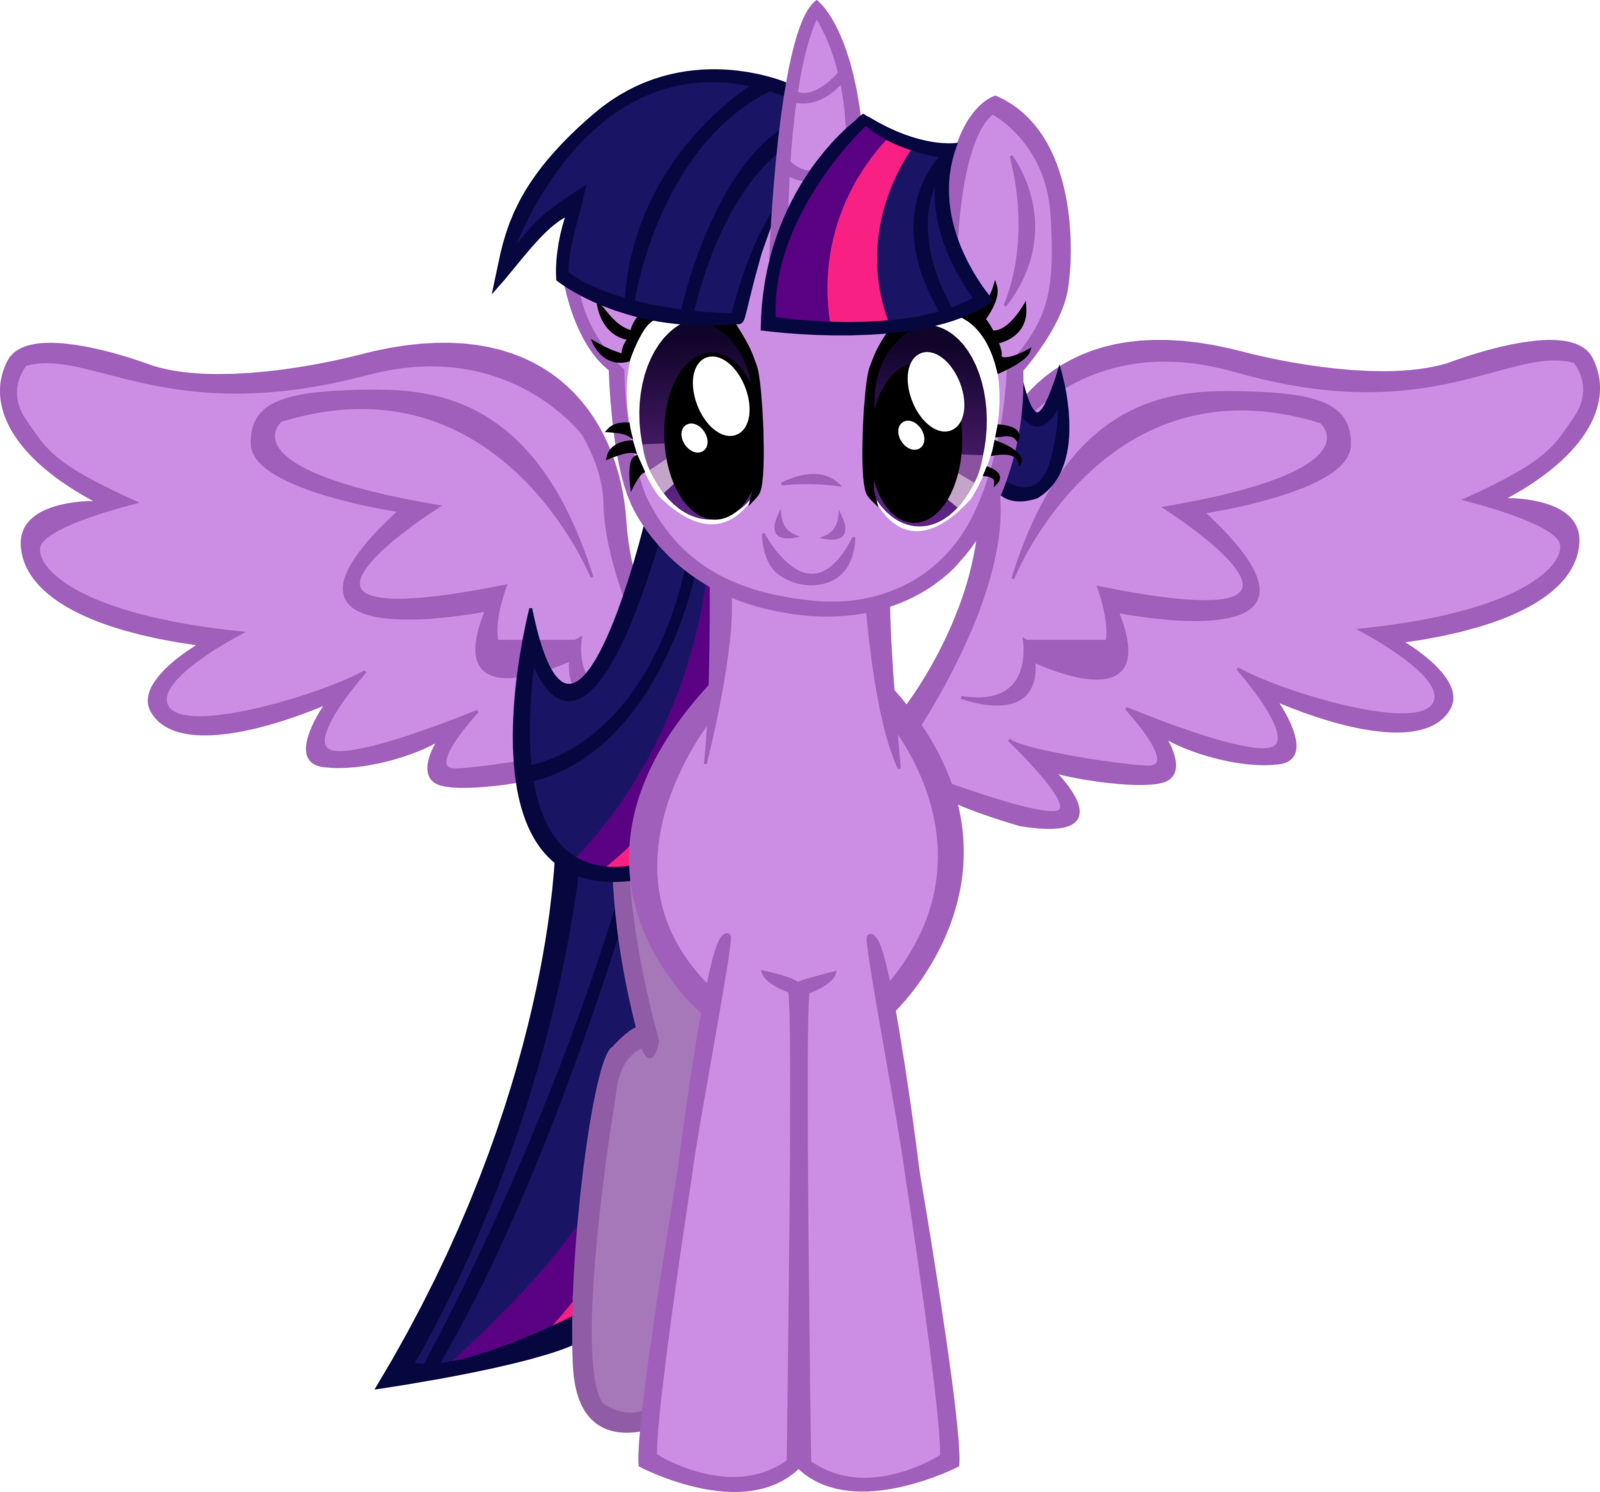 my little pony princess twilight sparkle Hot lovely wallpapers 1600x1492